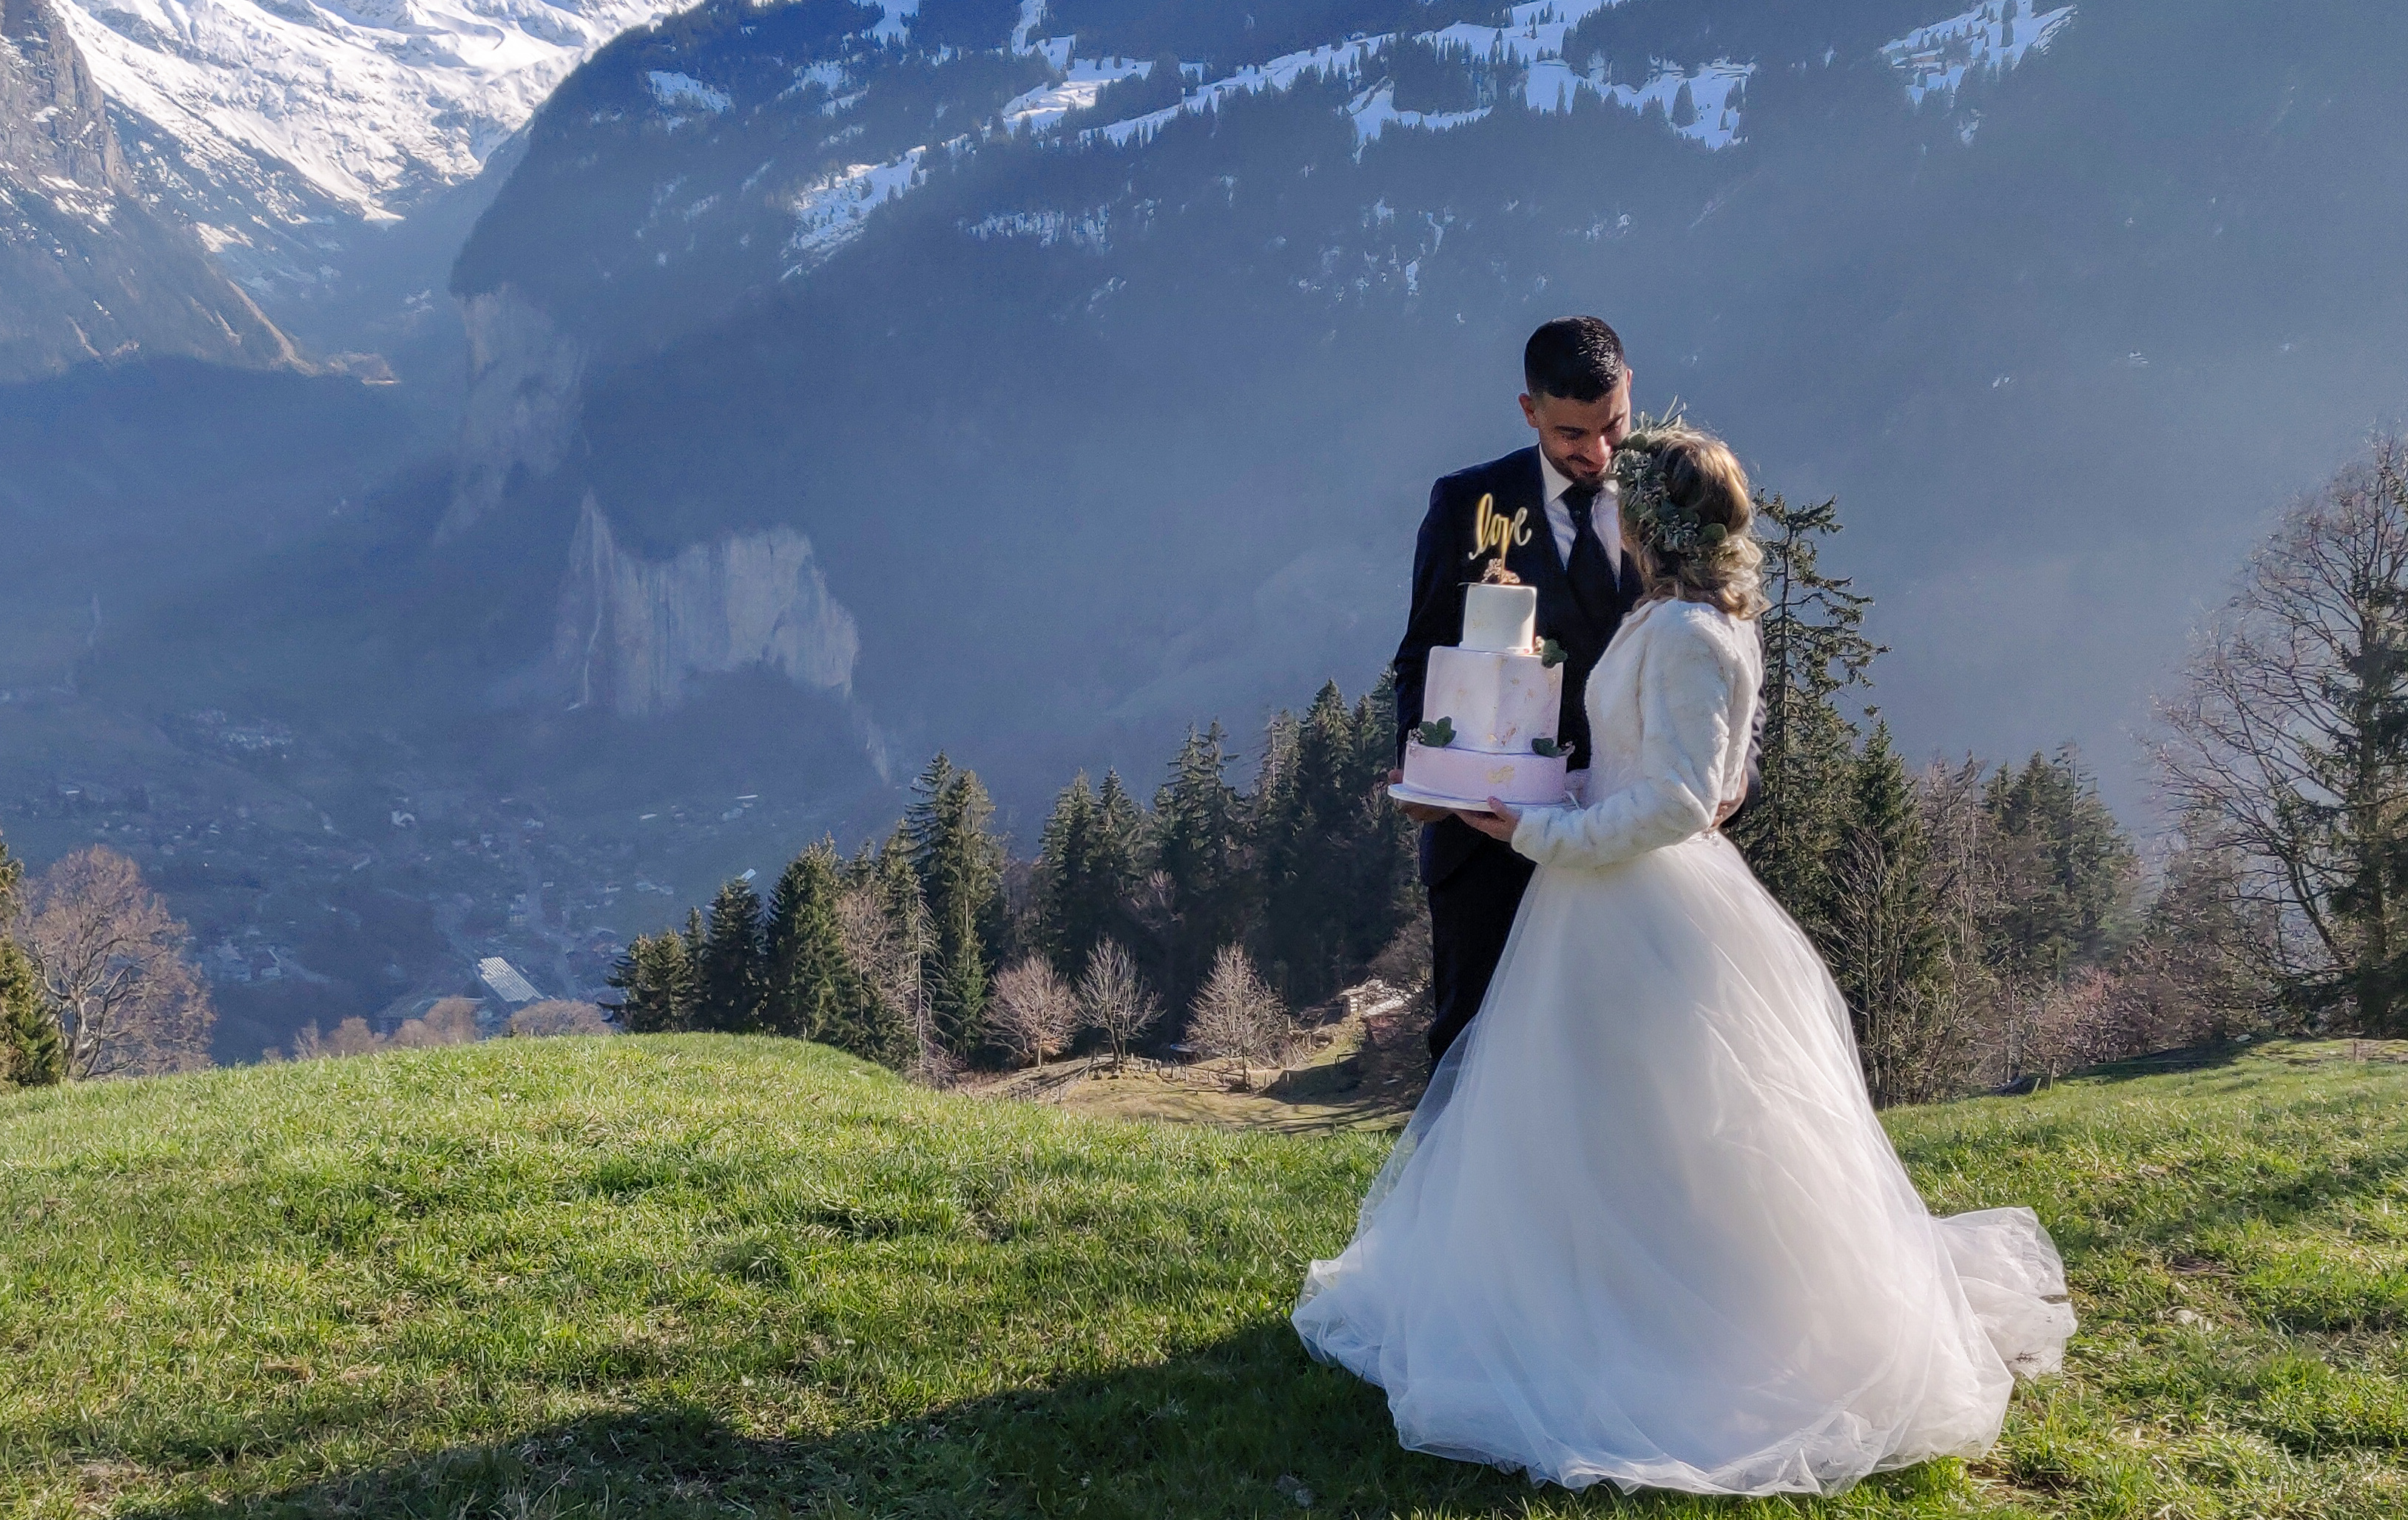 Heiraten in der Jungfrau Region